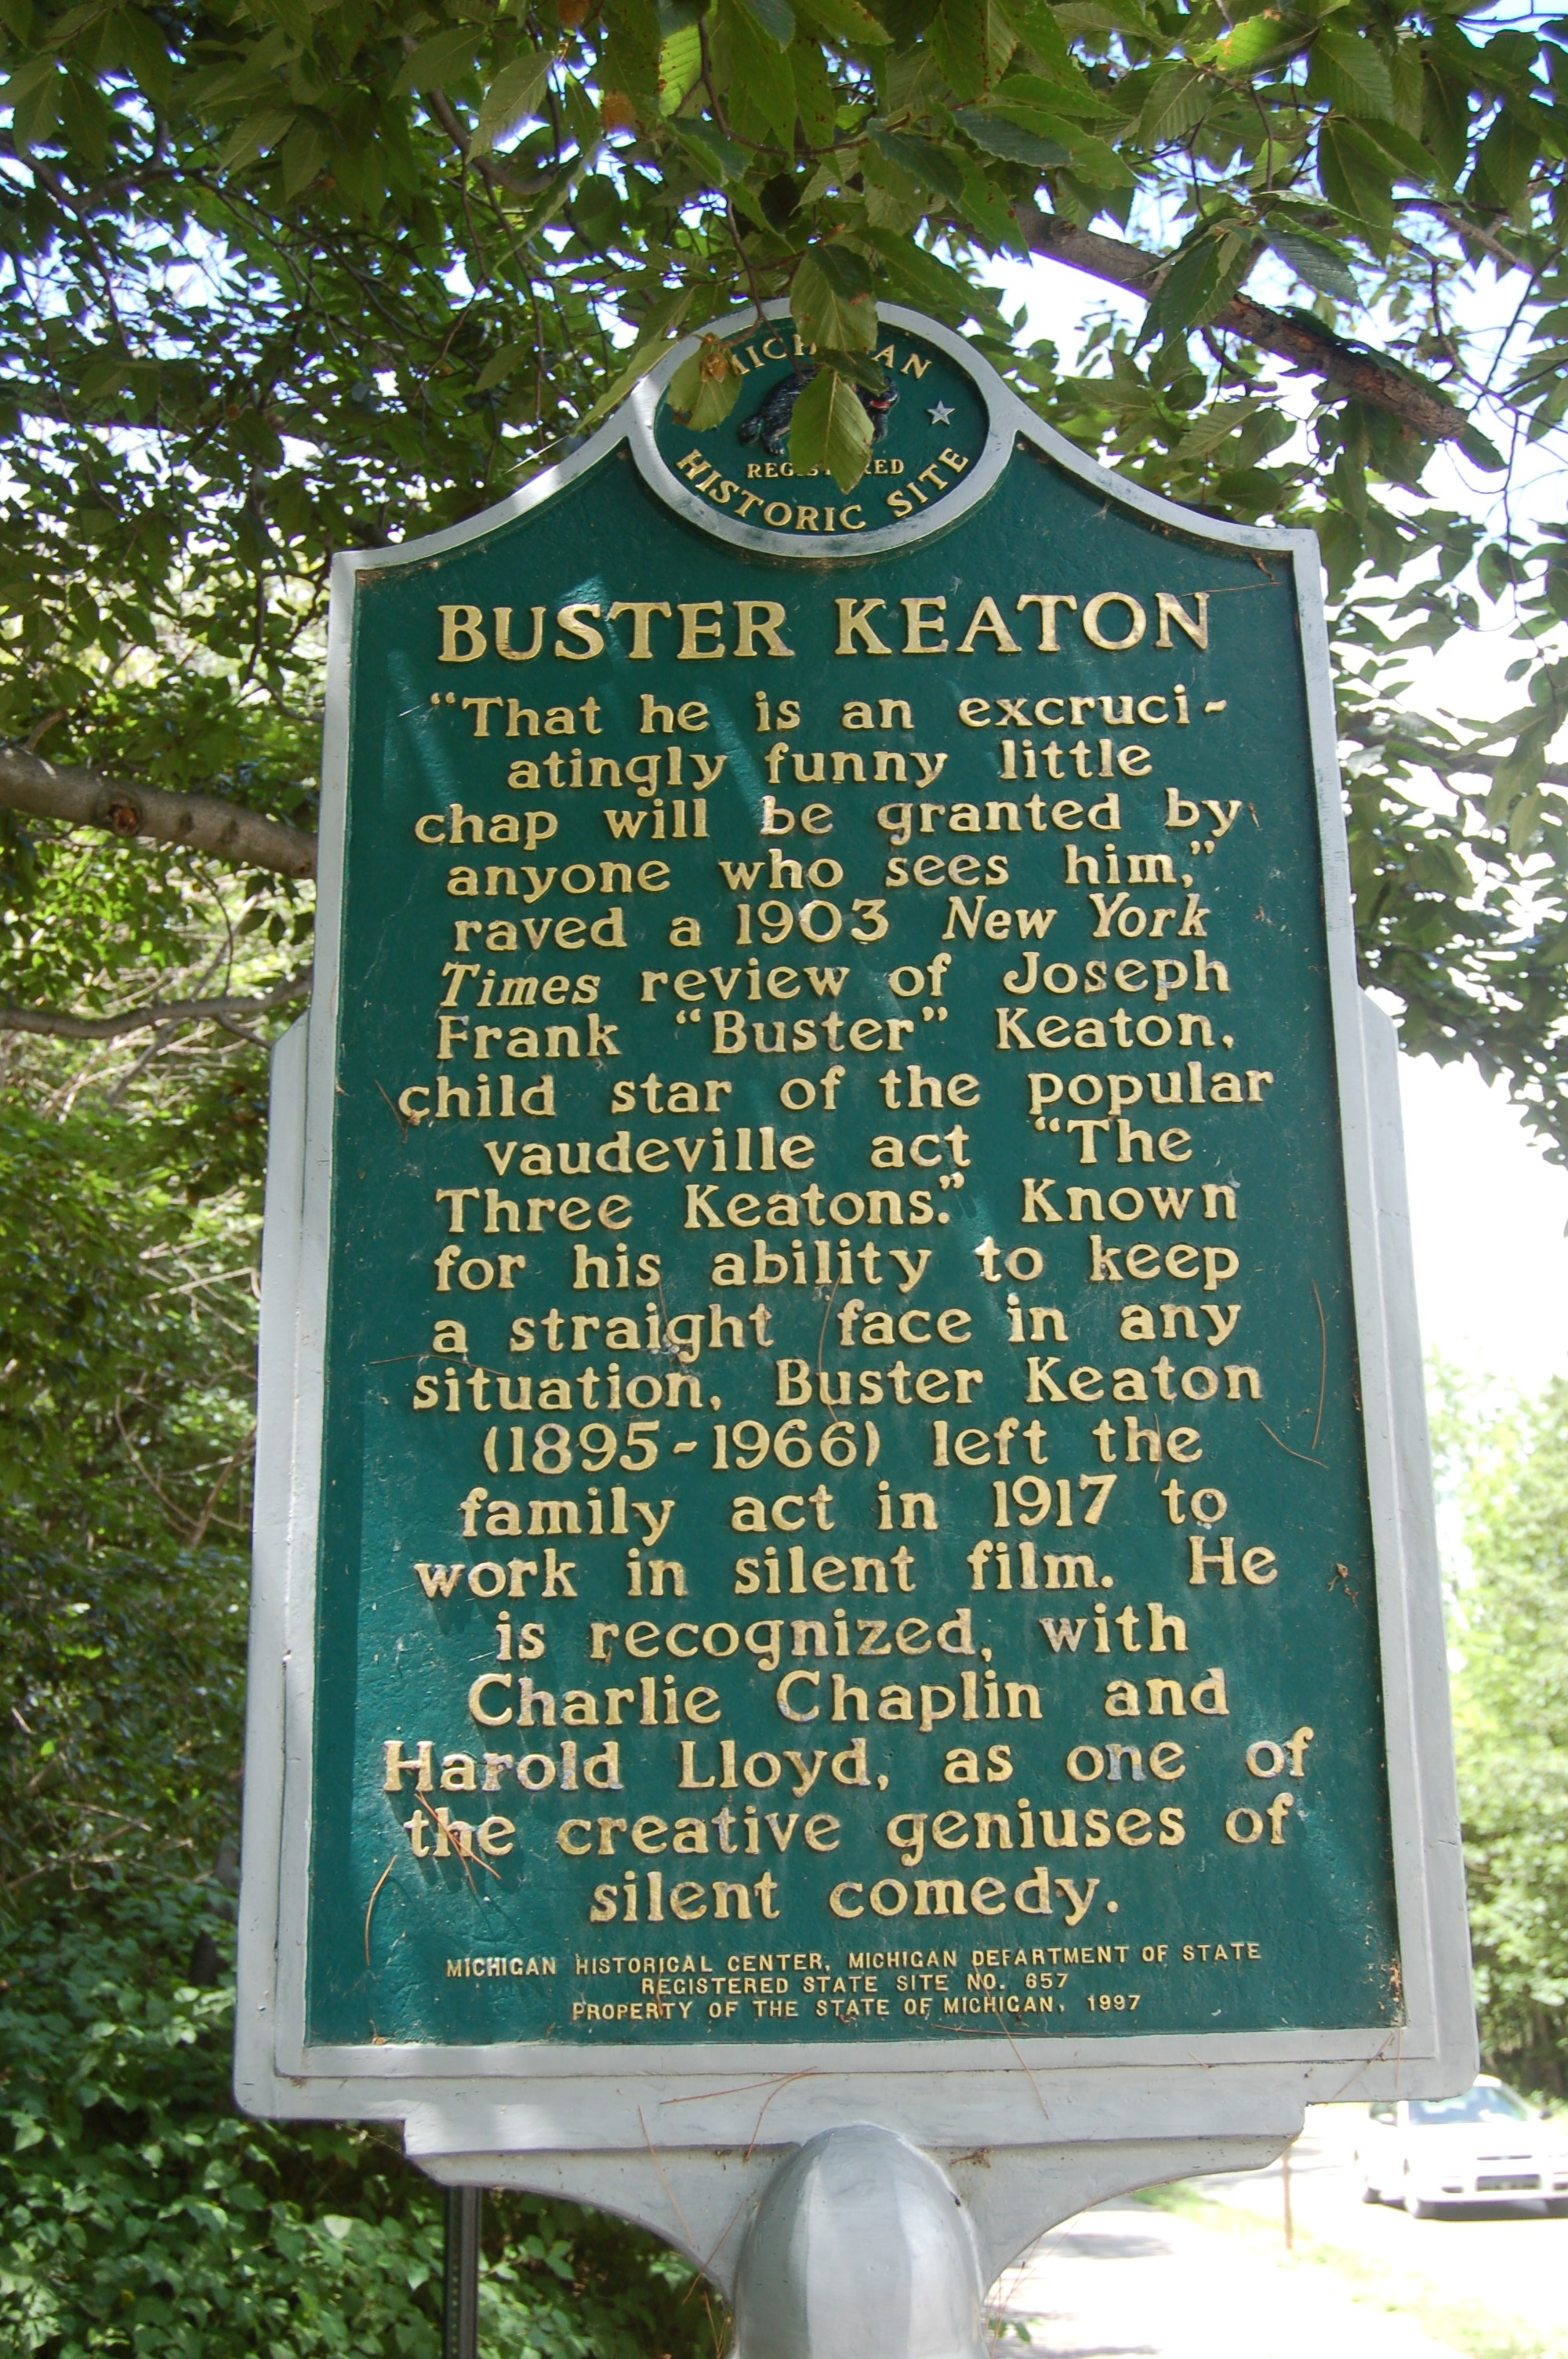 http://travelthemitten.com/wp-content/uploads/2016/03/Buster-KEaton-Historical-Marker-Michigan-e1459440473865.jpg